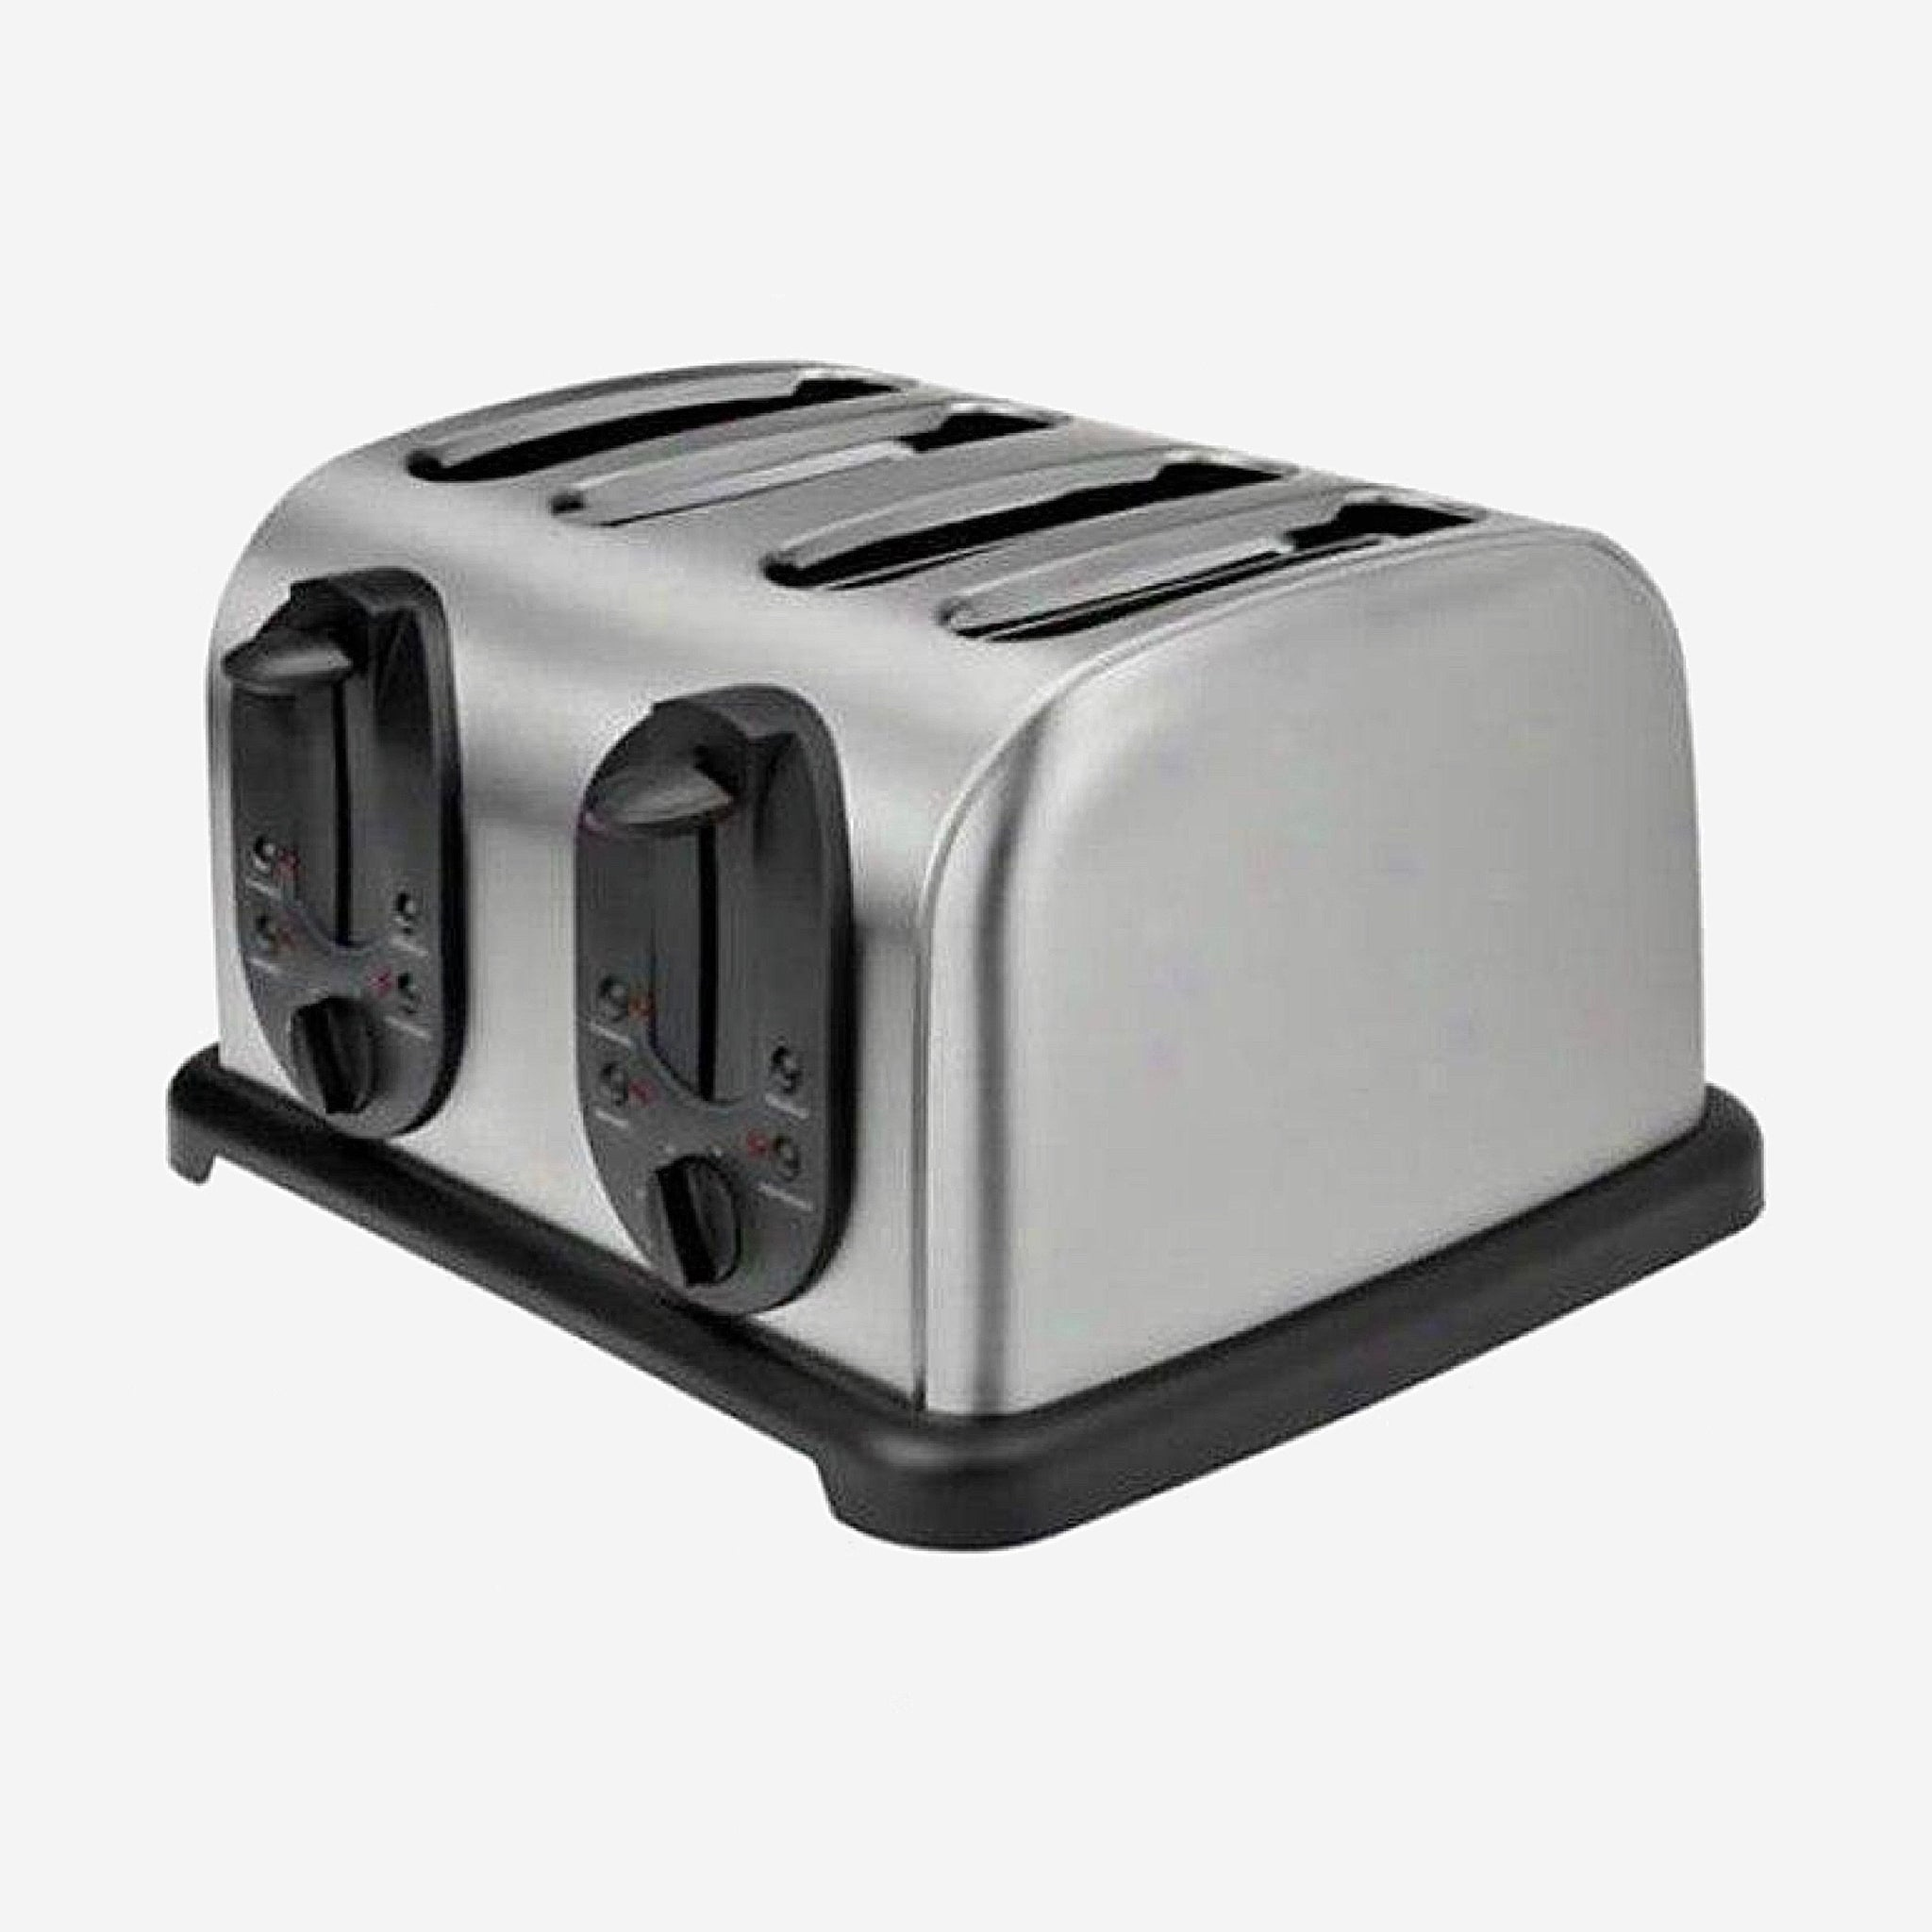 Stainless Steel 4-Slice Toaster    Household bread baking machine kitchen appliance bread toaster oven for breakfast Style